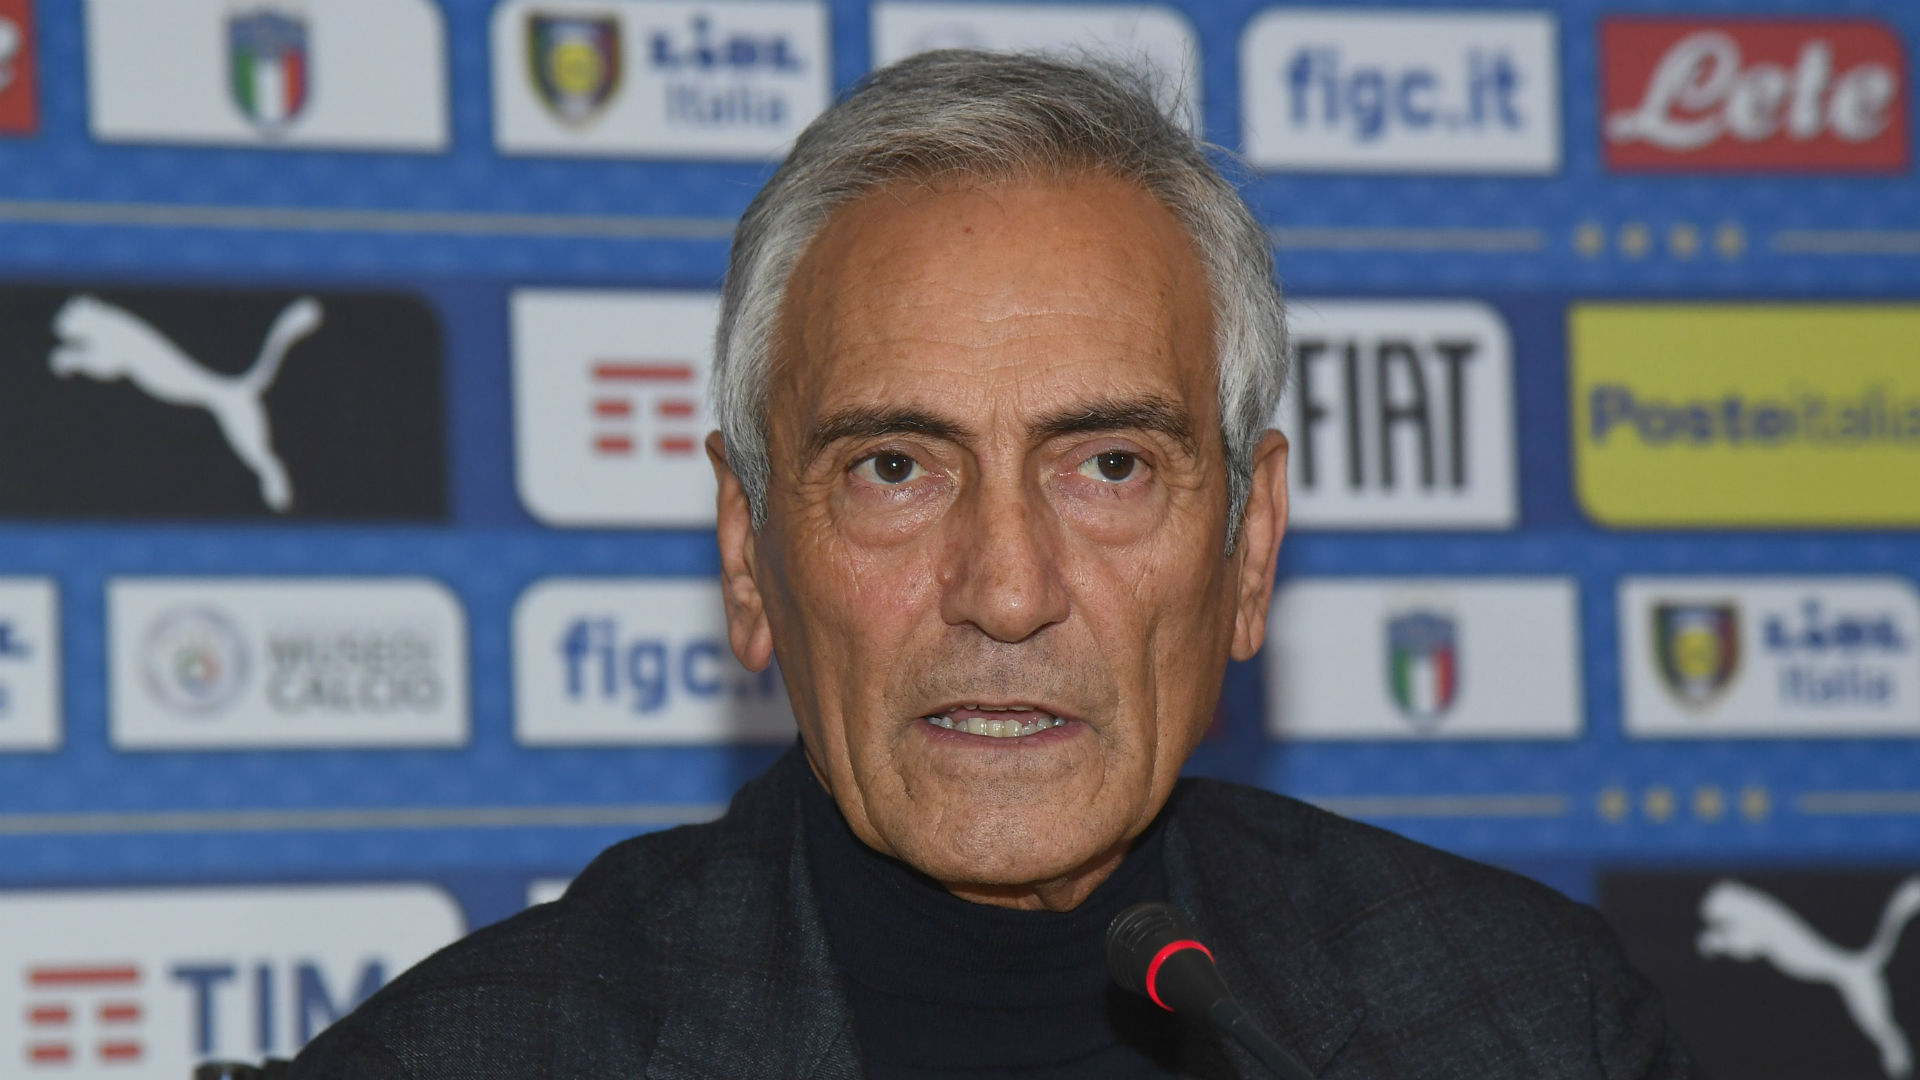 20-0 farce slammed as 'insult to sport' by Italian football chief